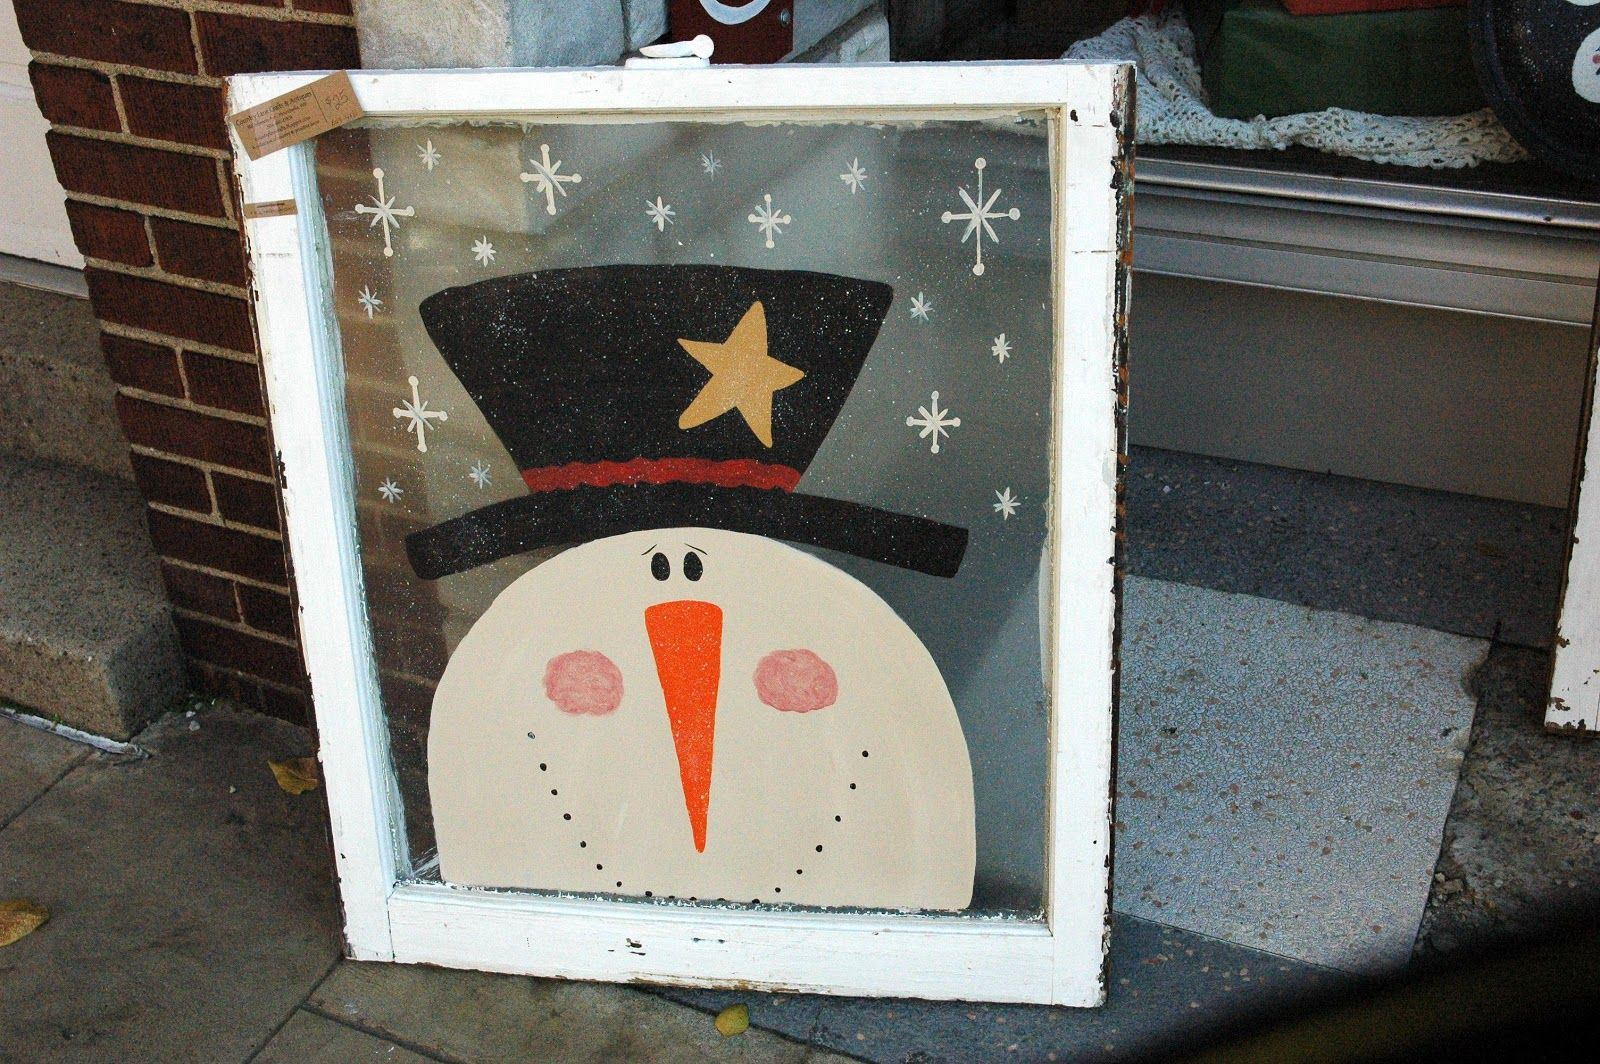 Snowman painted on windows country lane crafts in the meadow we